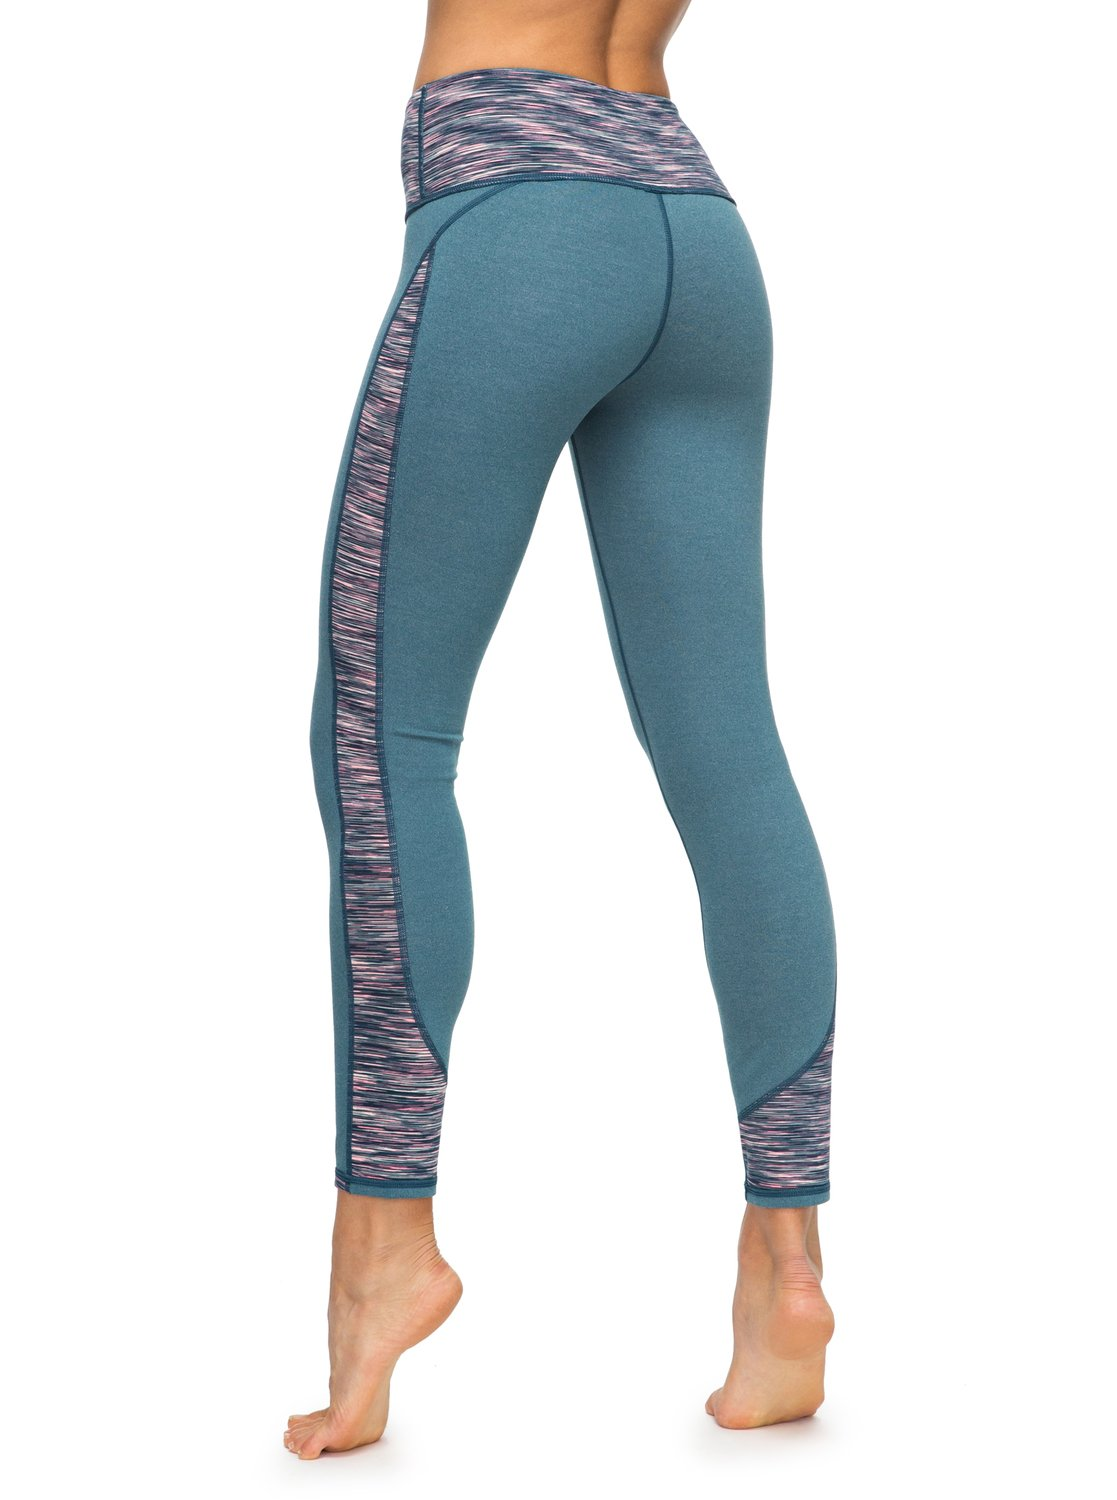 Nike Womens Clothing. When it comes to comfortable, reliable and supportive sports clothes, there's nothing quite like Nike women's clothing. From sports bras and capri pants to yoga pants and tennis dresses, there's something that's perfect for every sport—and it's .